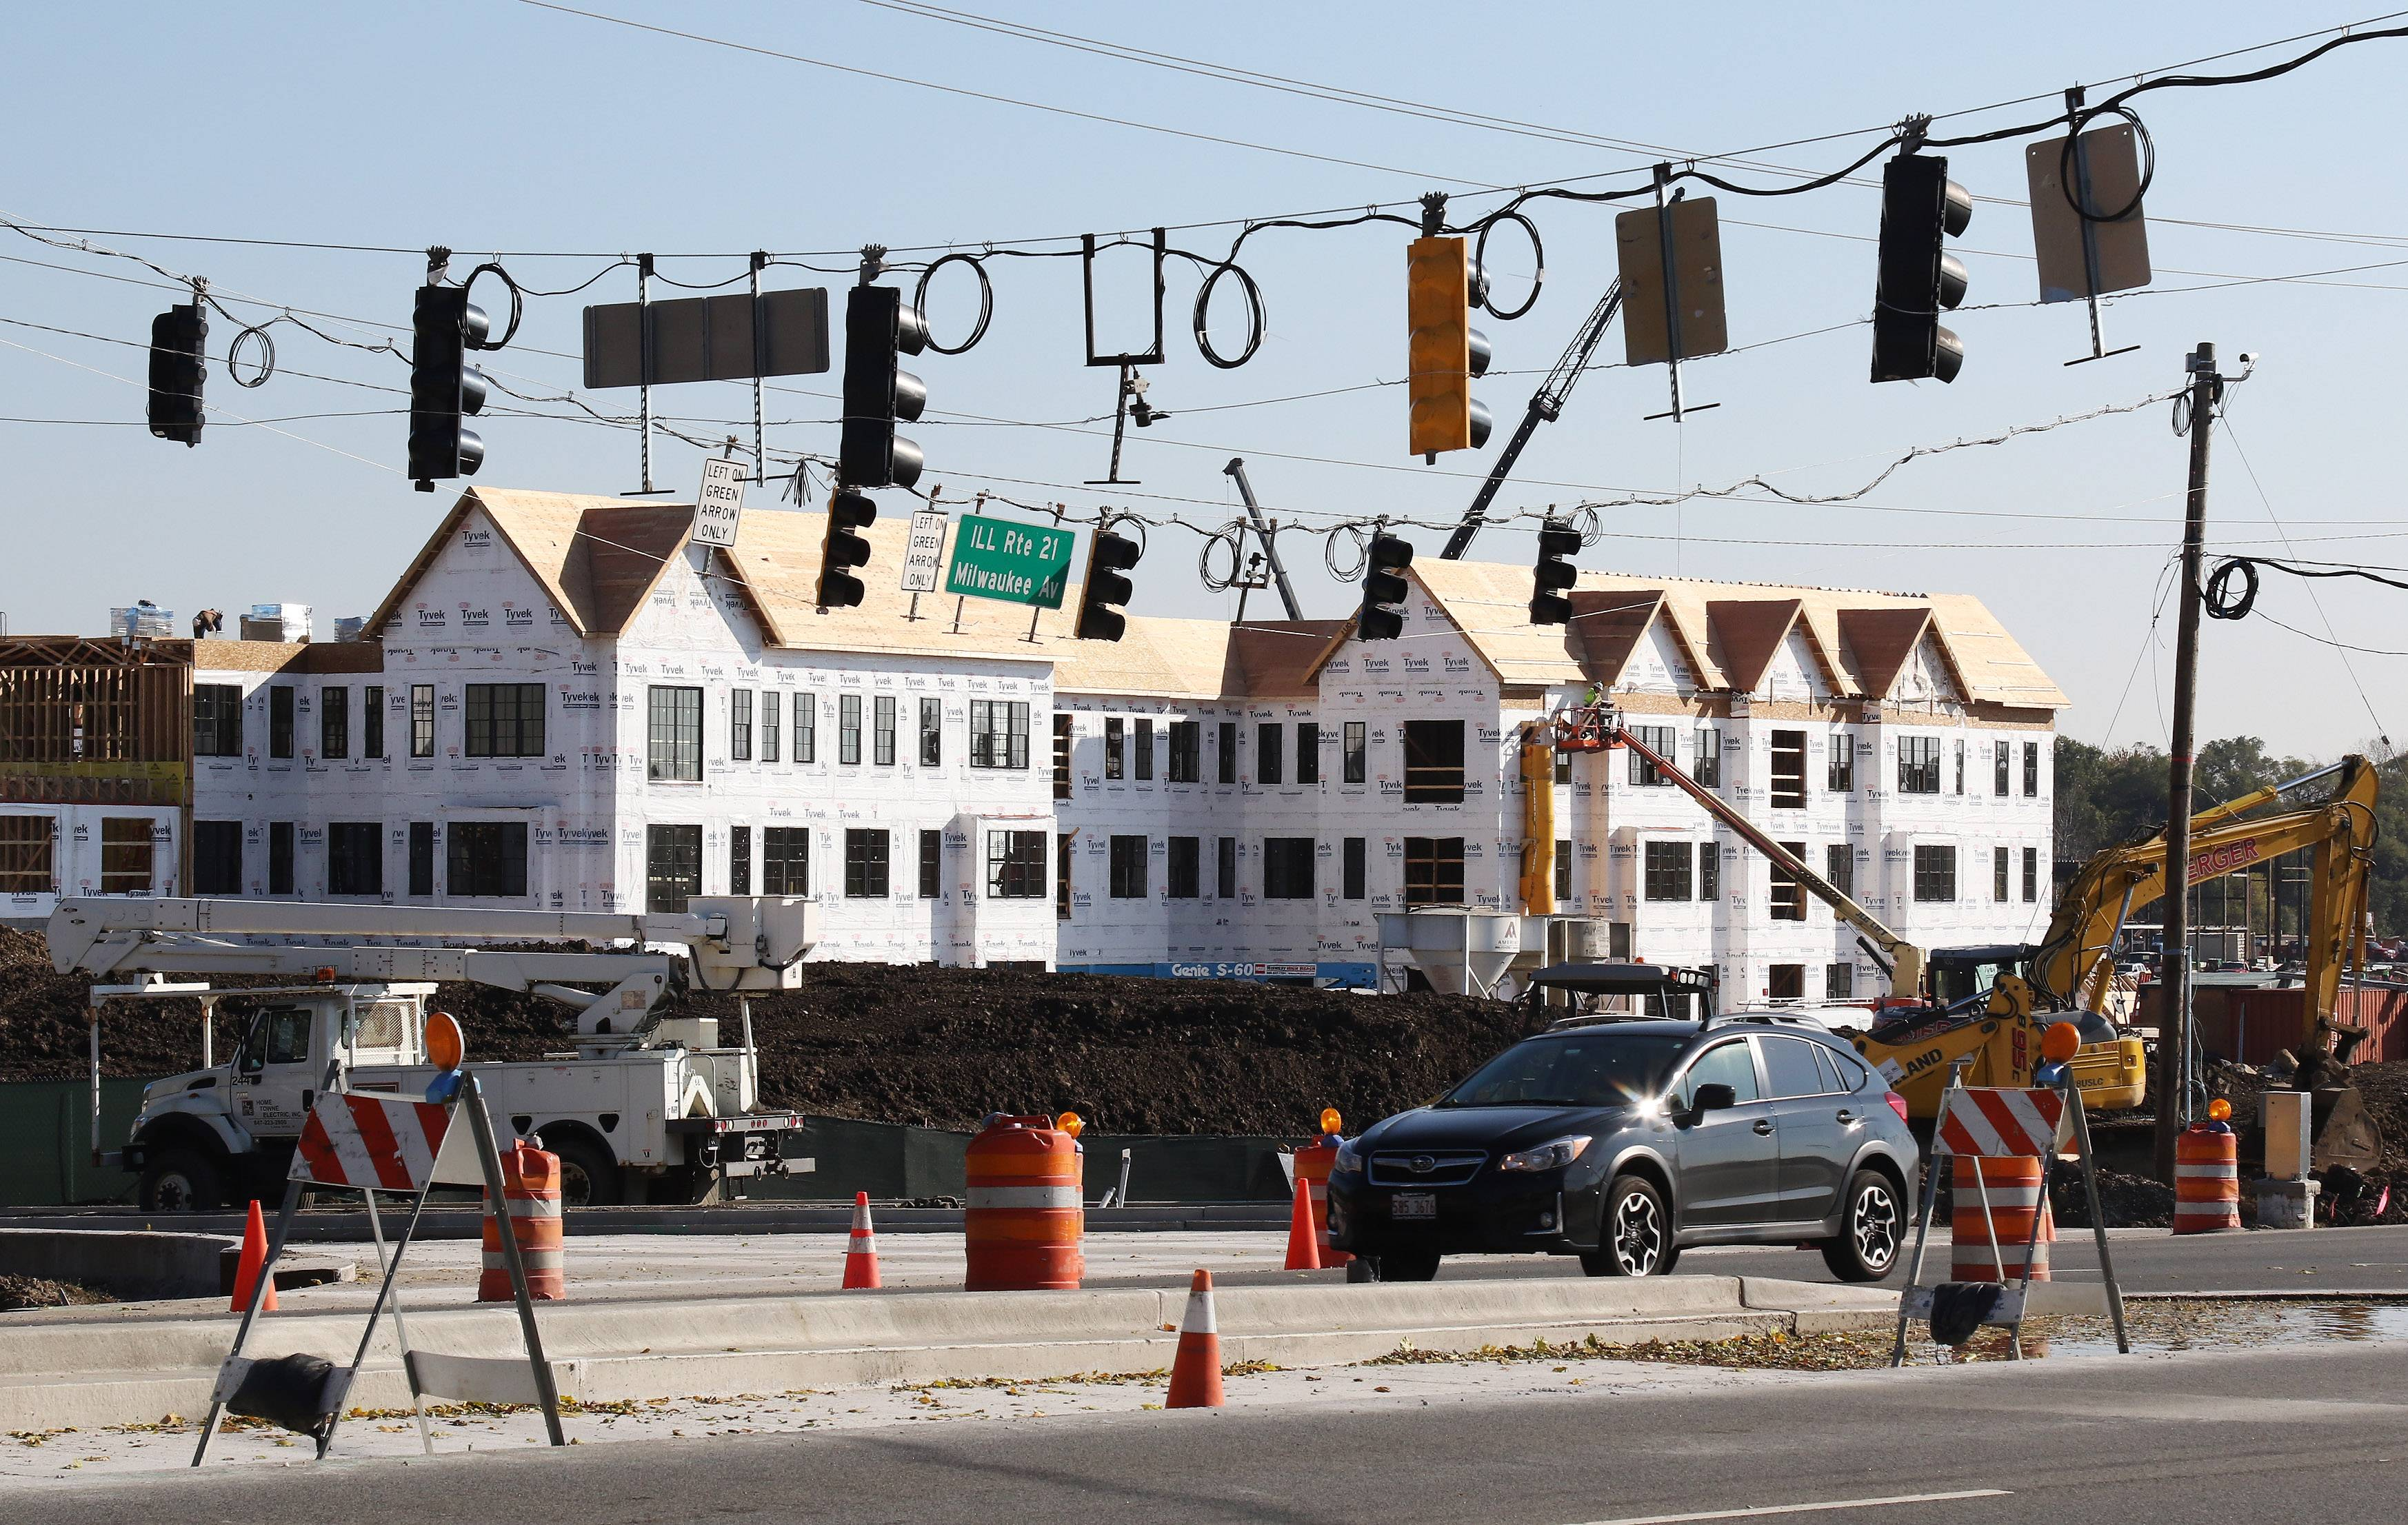 Construction continues at the Mellody Farm development at the intersection of routes 21 and 60 in Vernon Hills.